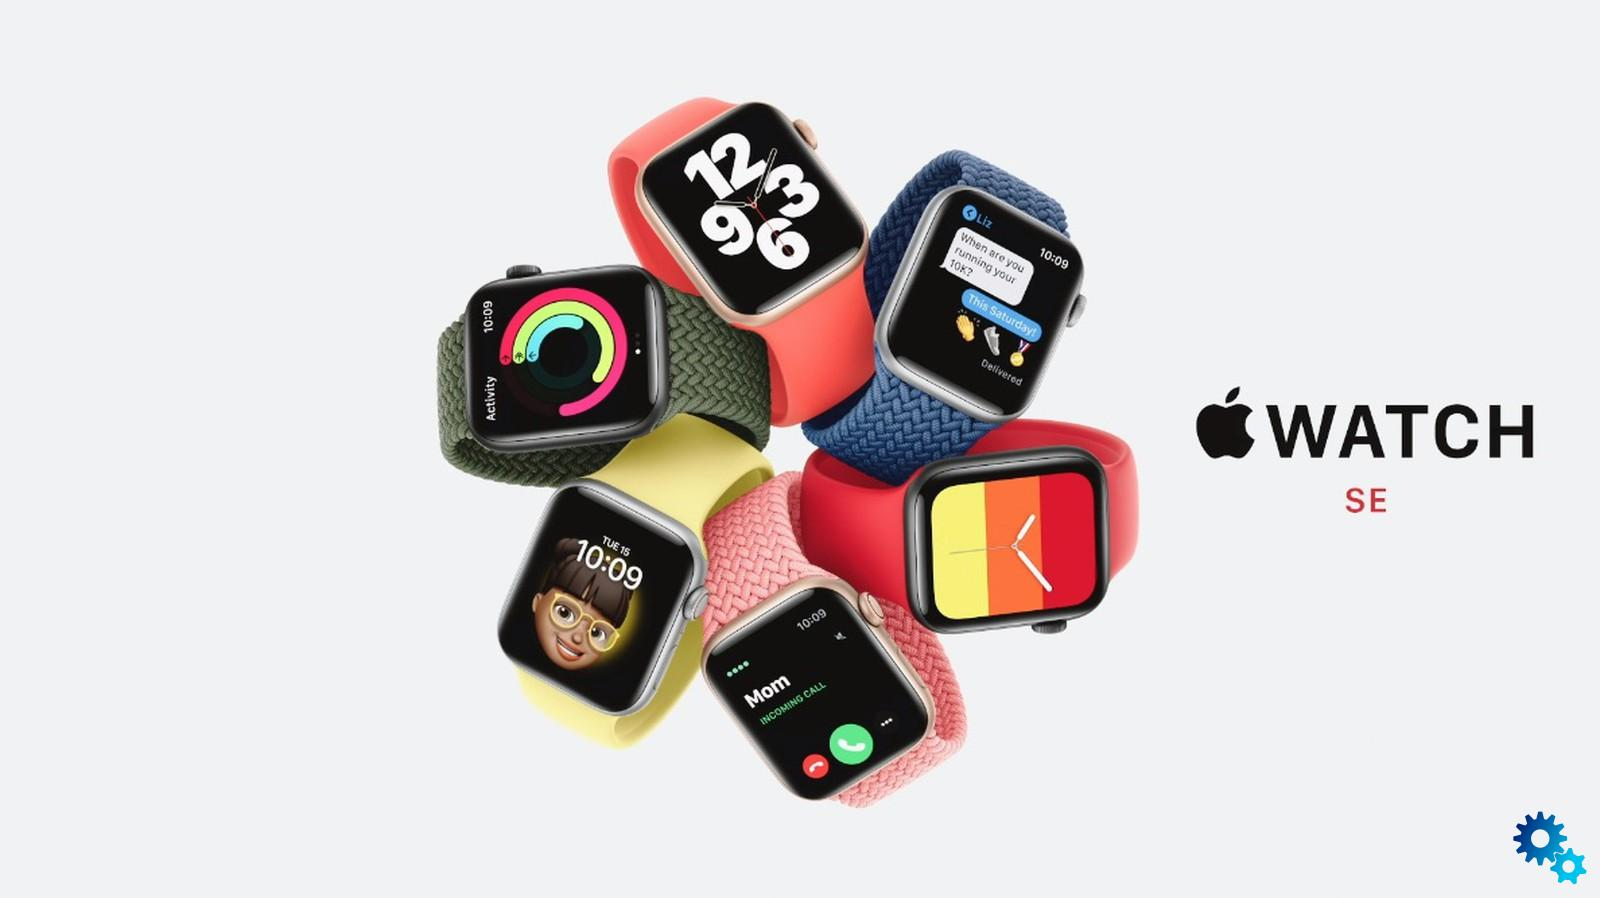 Apple has launched Apple Watch Series 6, Apple Watch SE and the 8th generation iPad